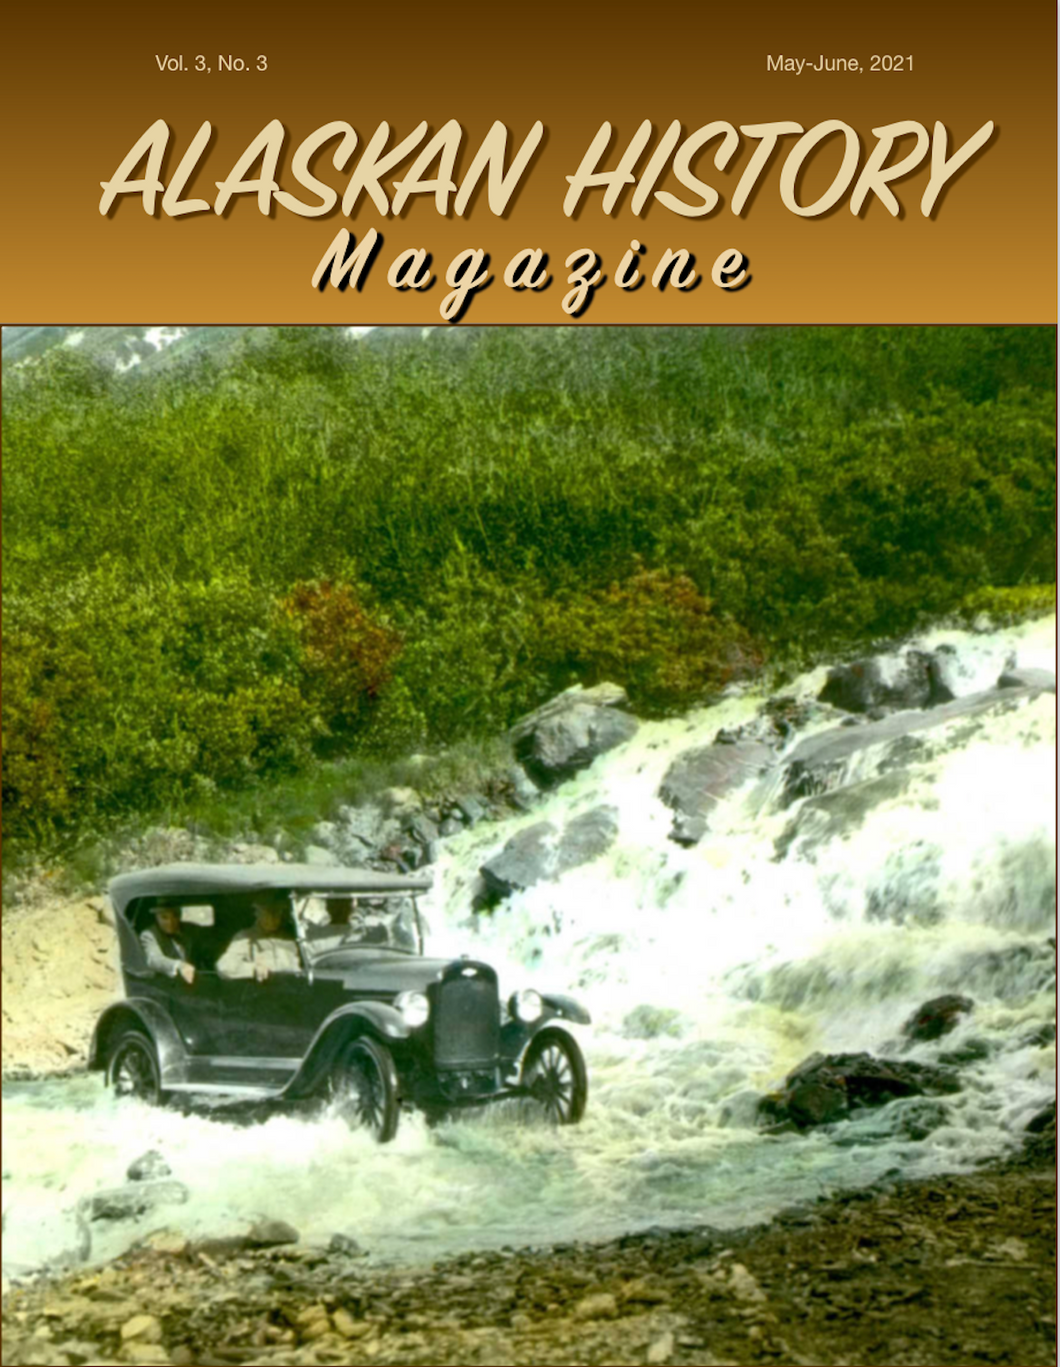 Alaskan History Magazine: Vol. 3 No. 3 May-June 2021